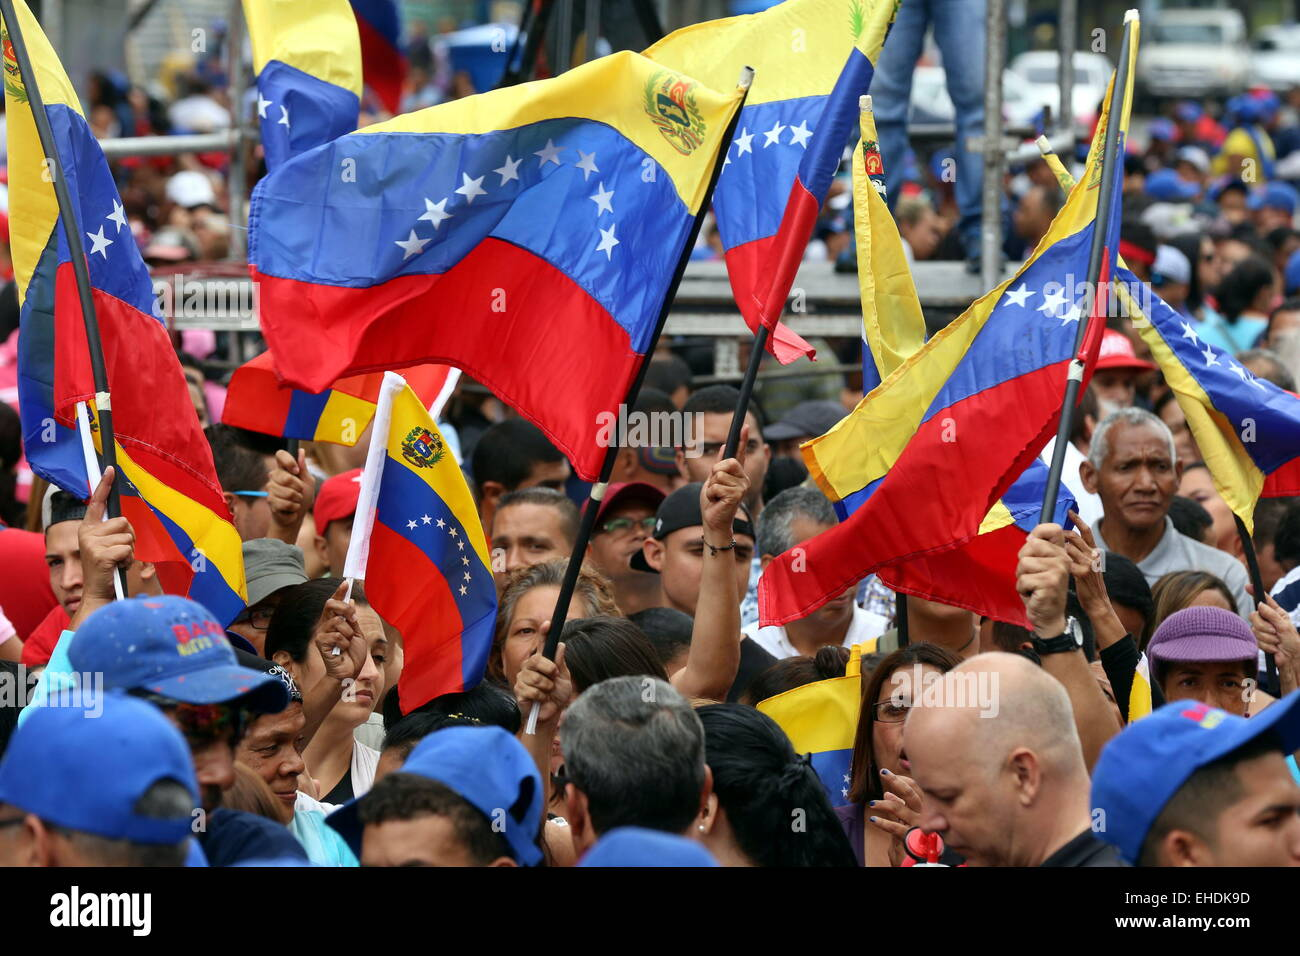 Caracas, Venezuela. 12th Mar, 2015. Residents hold Venezuelan national flags during an 'anti-imperialist' - Stock Image